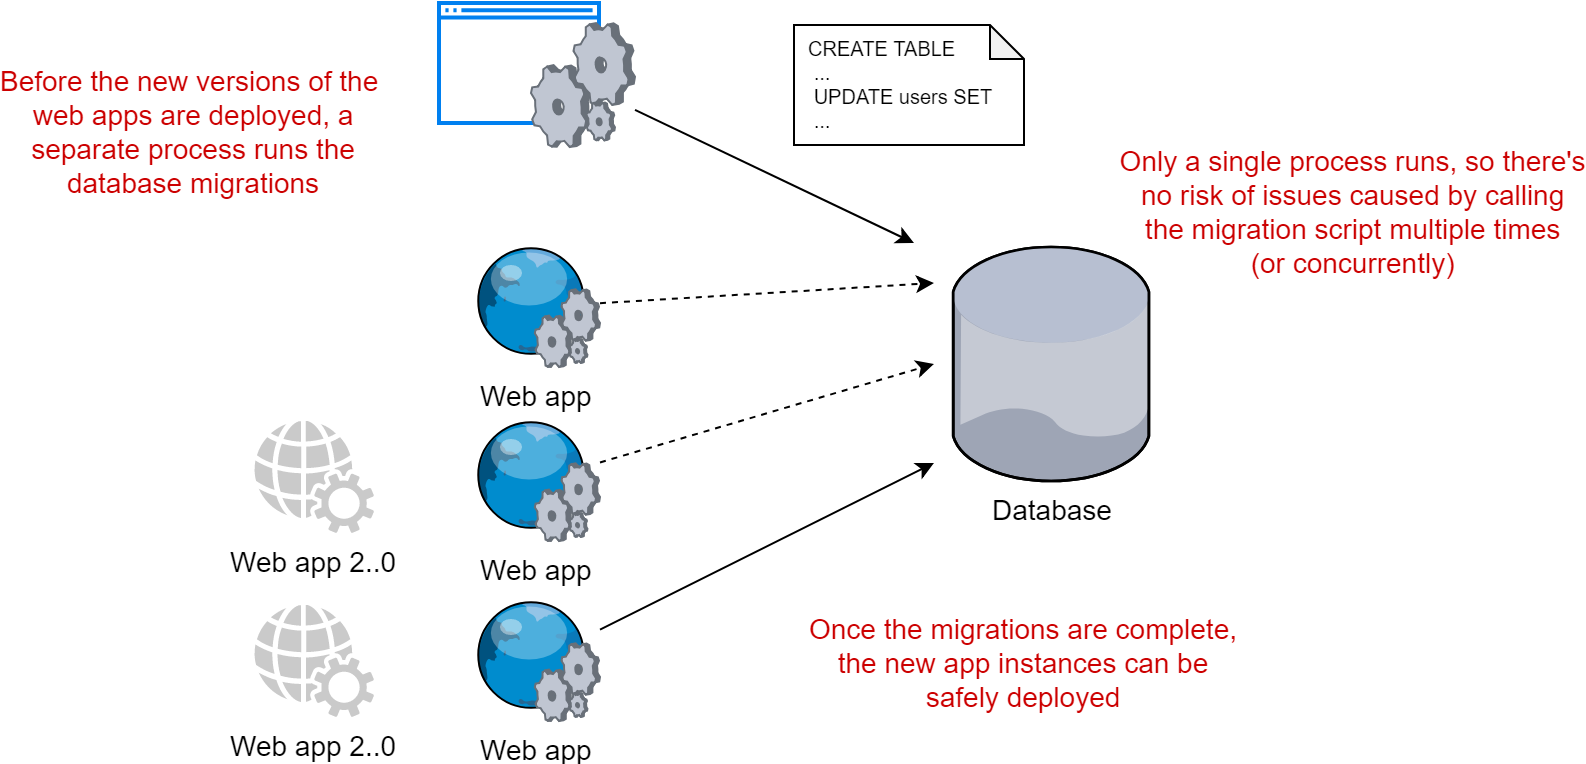 Running database migrations safely using an external process